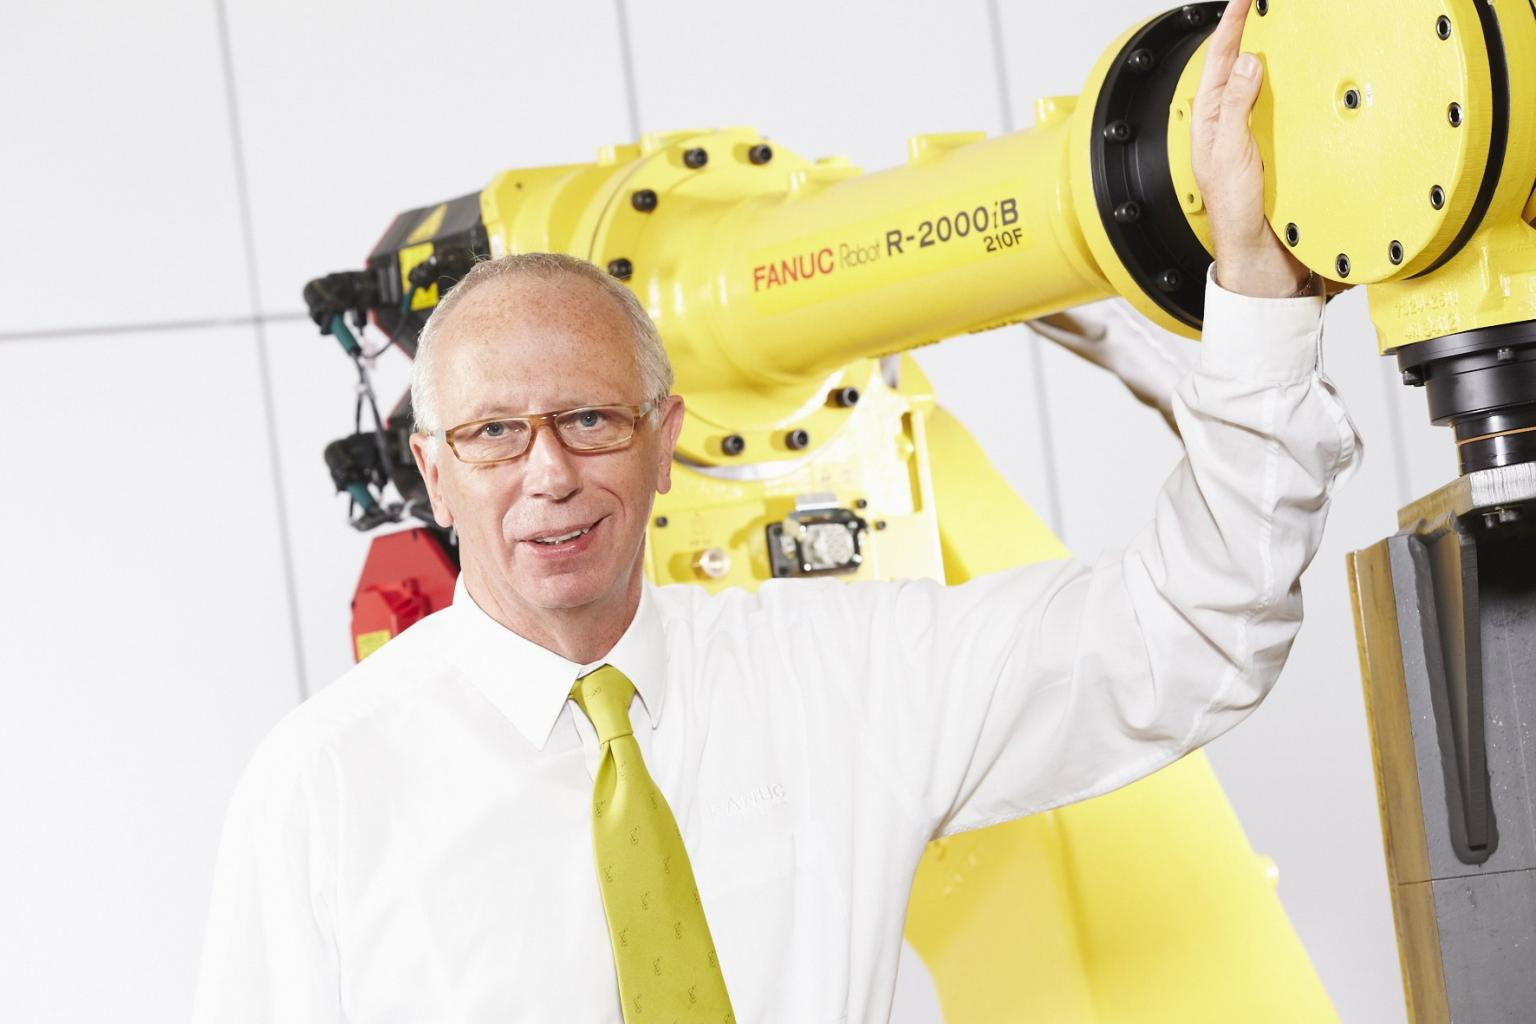 """Whether you opt for a fully or partly automated solution will depend on a variety of factors, including budget and the amount of space available."" - Chris Sumner, Managing Director, FANUC UK"